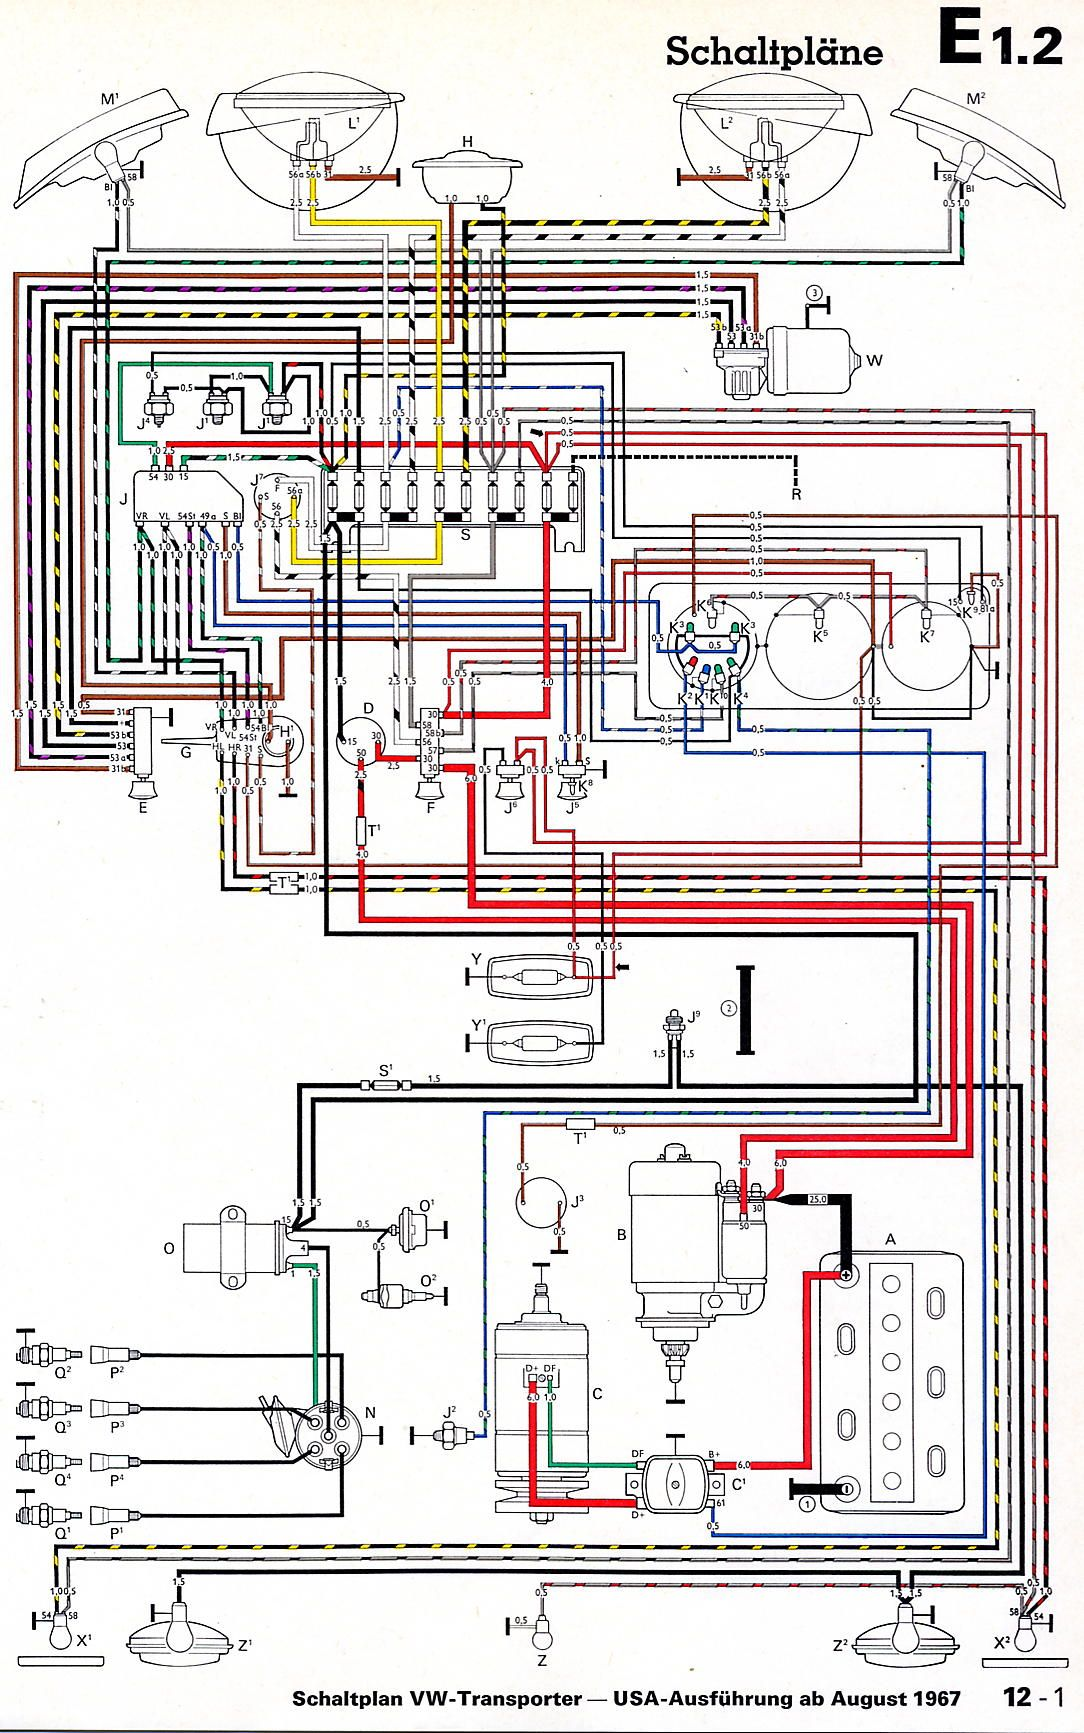 Westfalia T4 Wiring Diagram Automotive Wiring Diagram \u2022 97 VW Jetta  Fuse Box Diagram Vw Eurovan Fuse Diagram